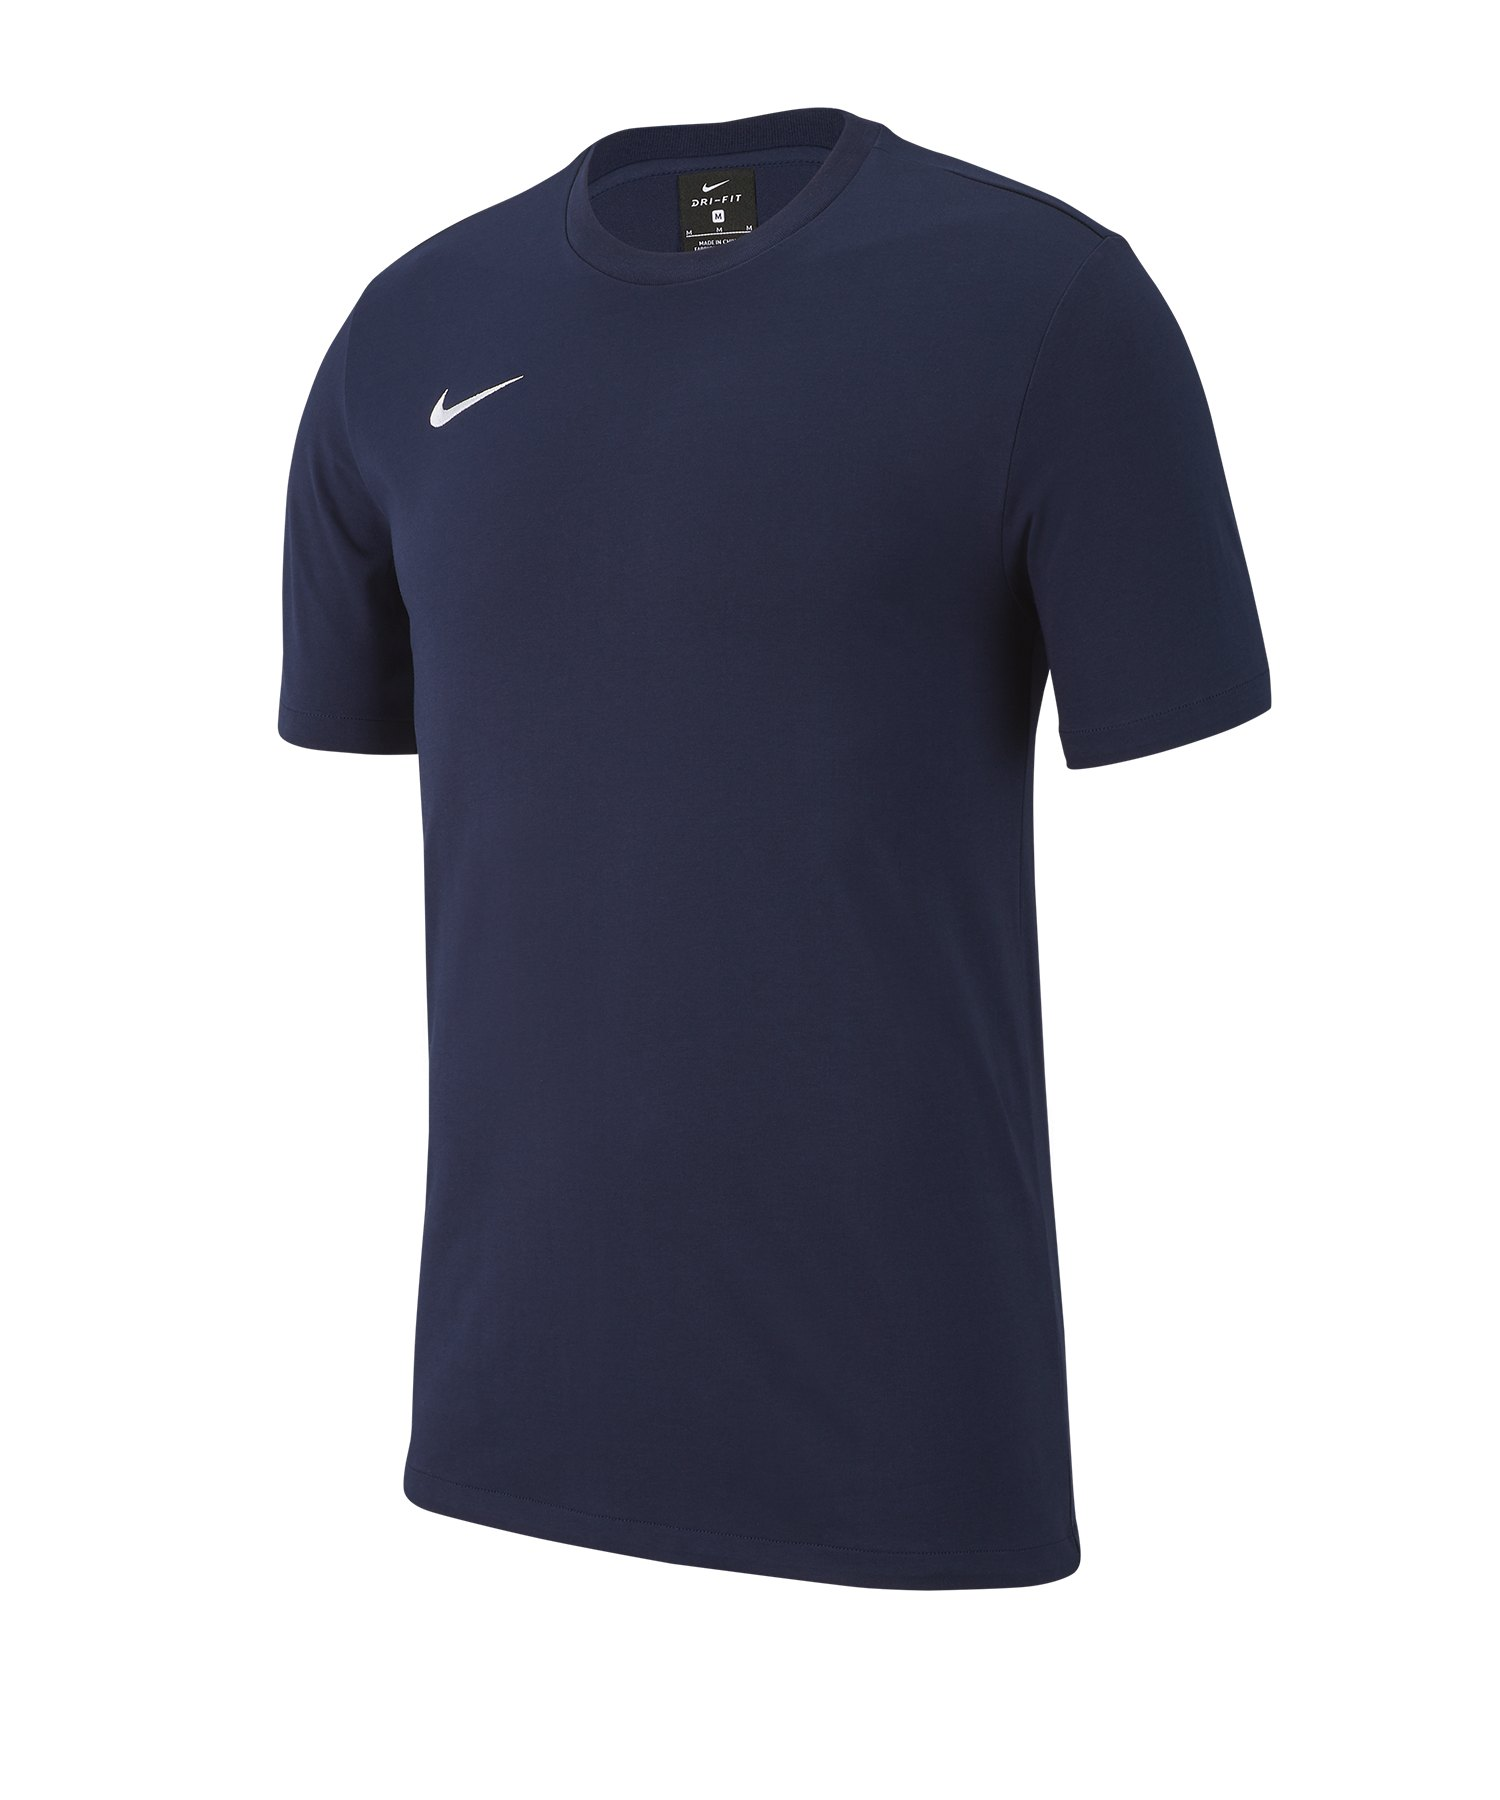 Nike Club 19 T-Shirt Kids Grau F451 - blau